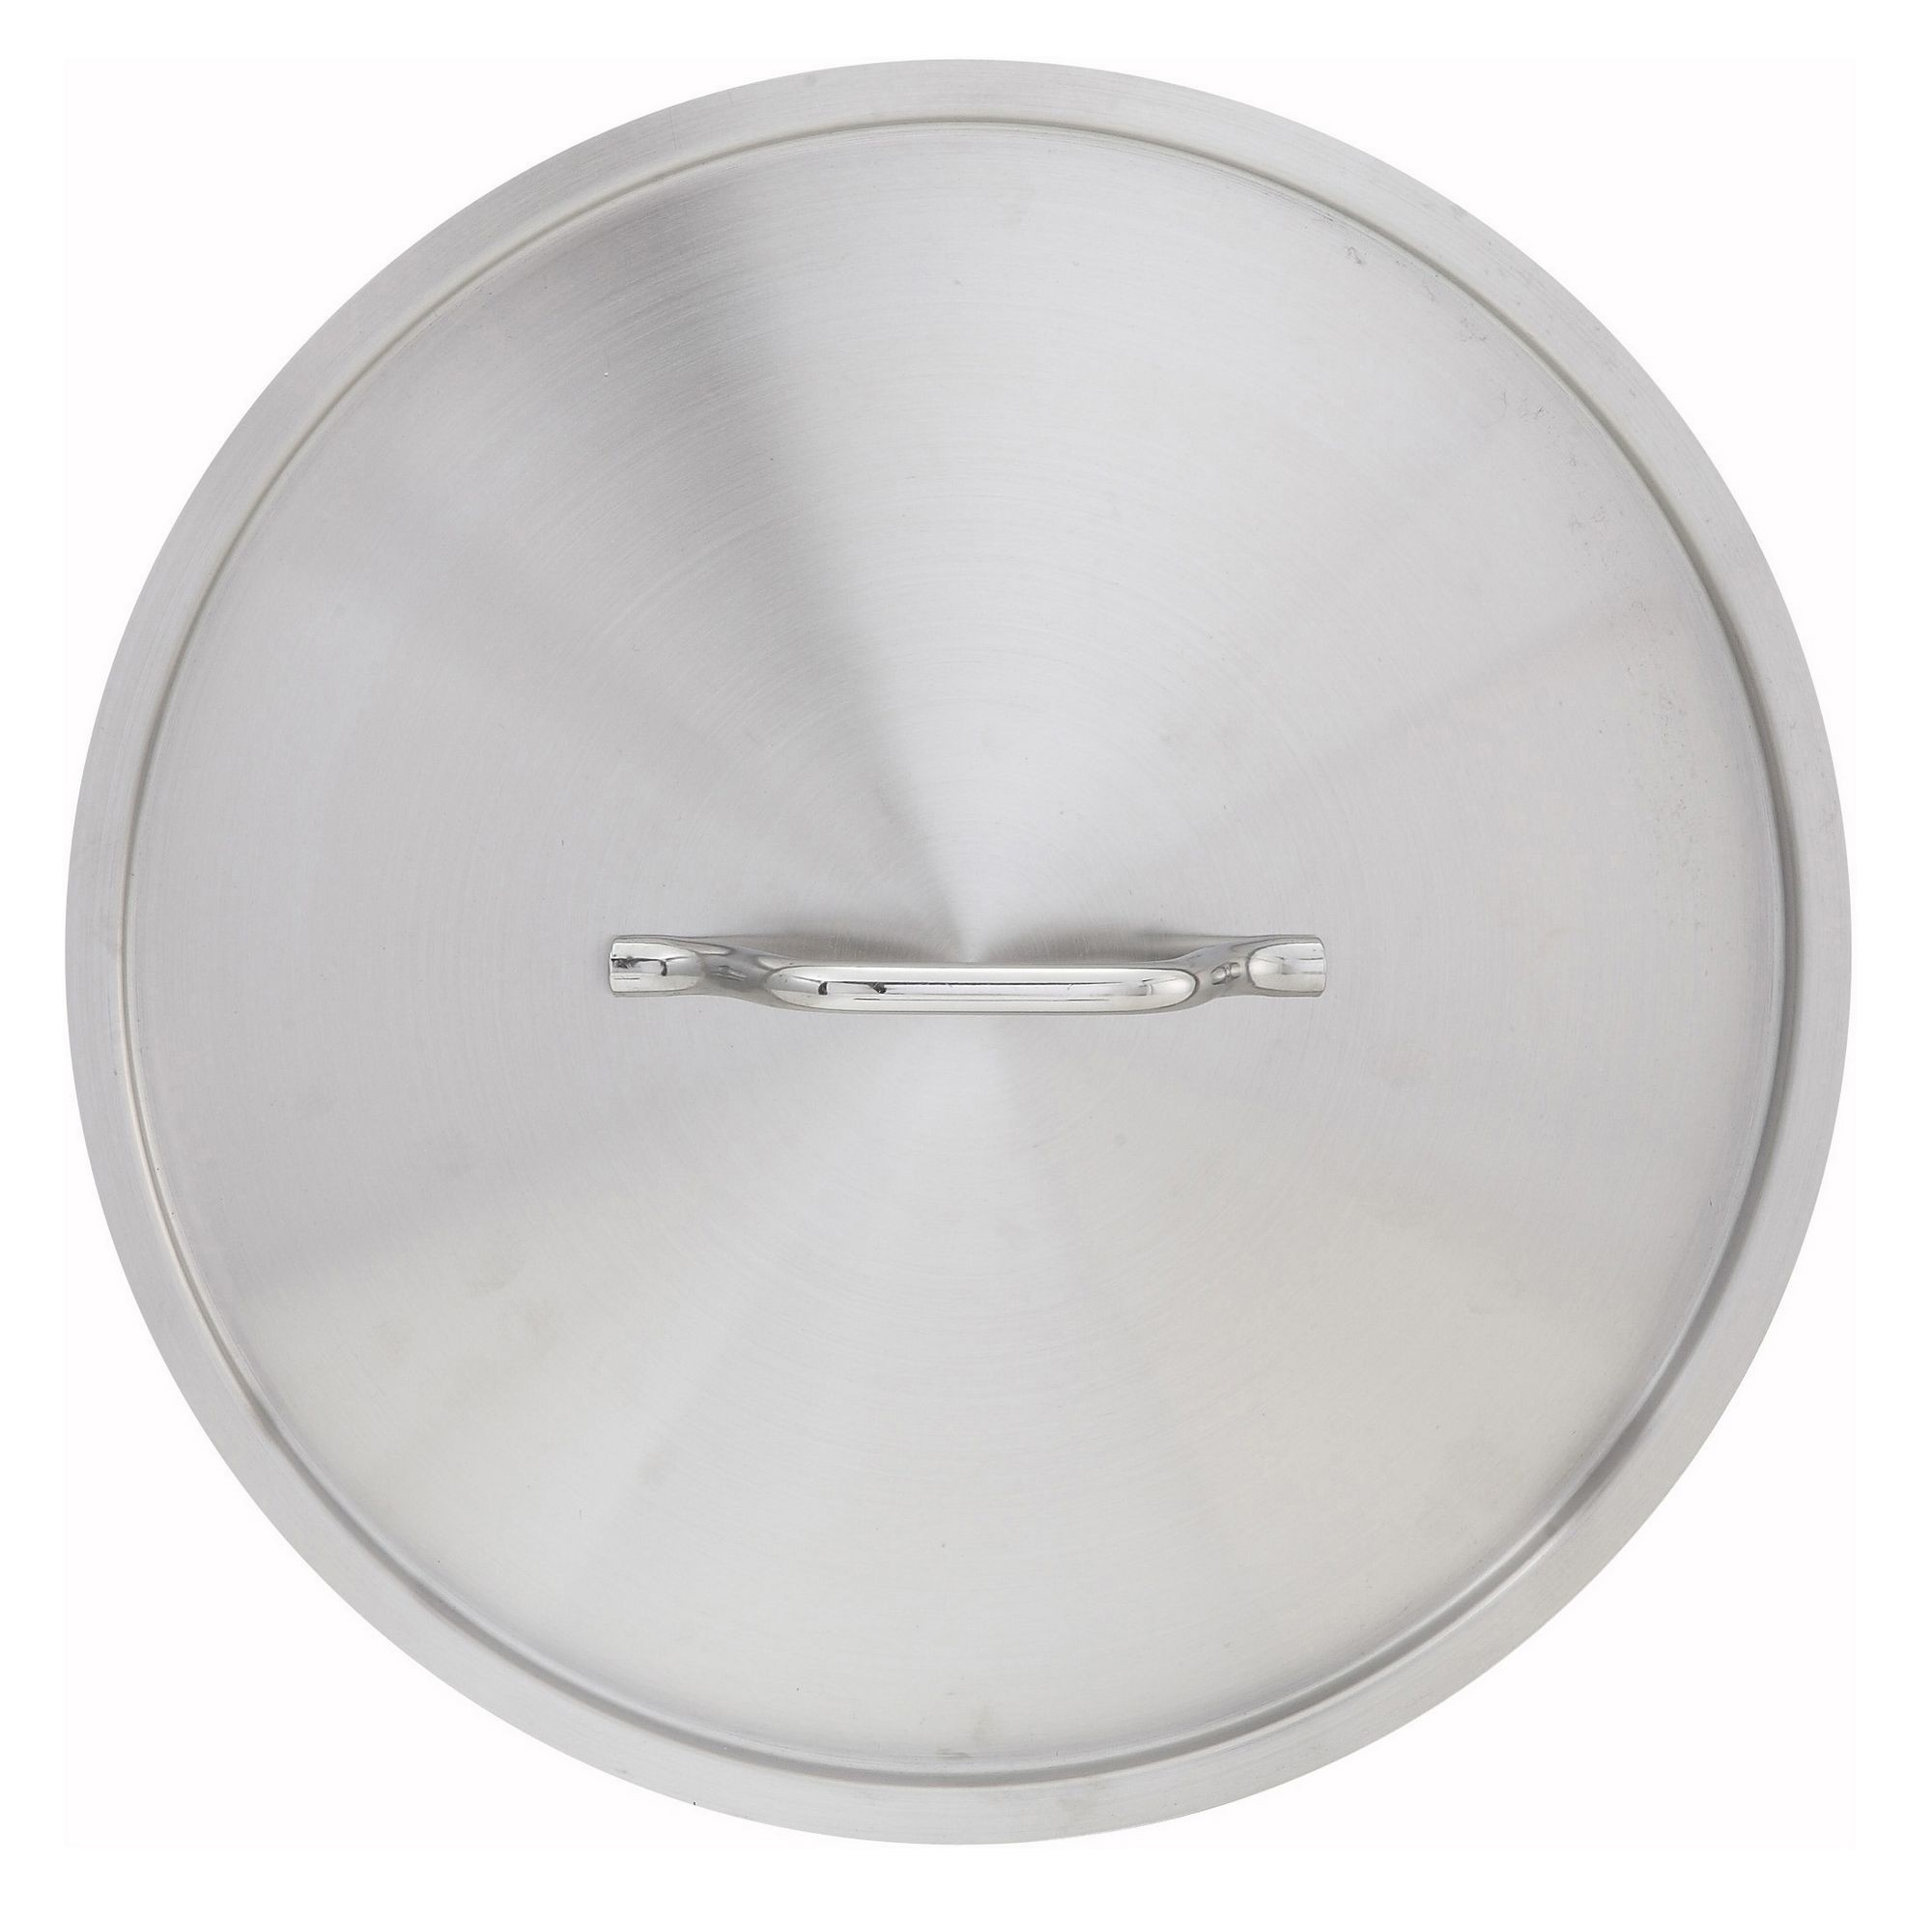 Winco SSTC-12 Stainless Steel Cover for SST-12 SST-16 SSFP-11 SSFP-11NS